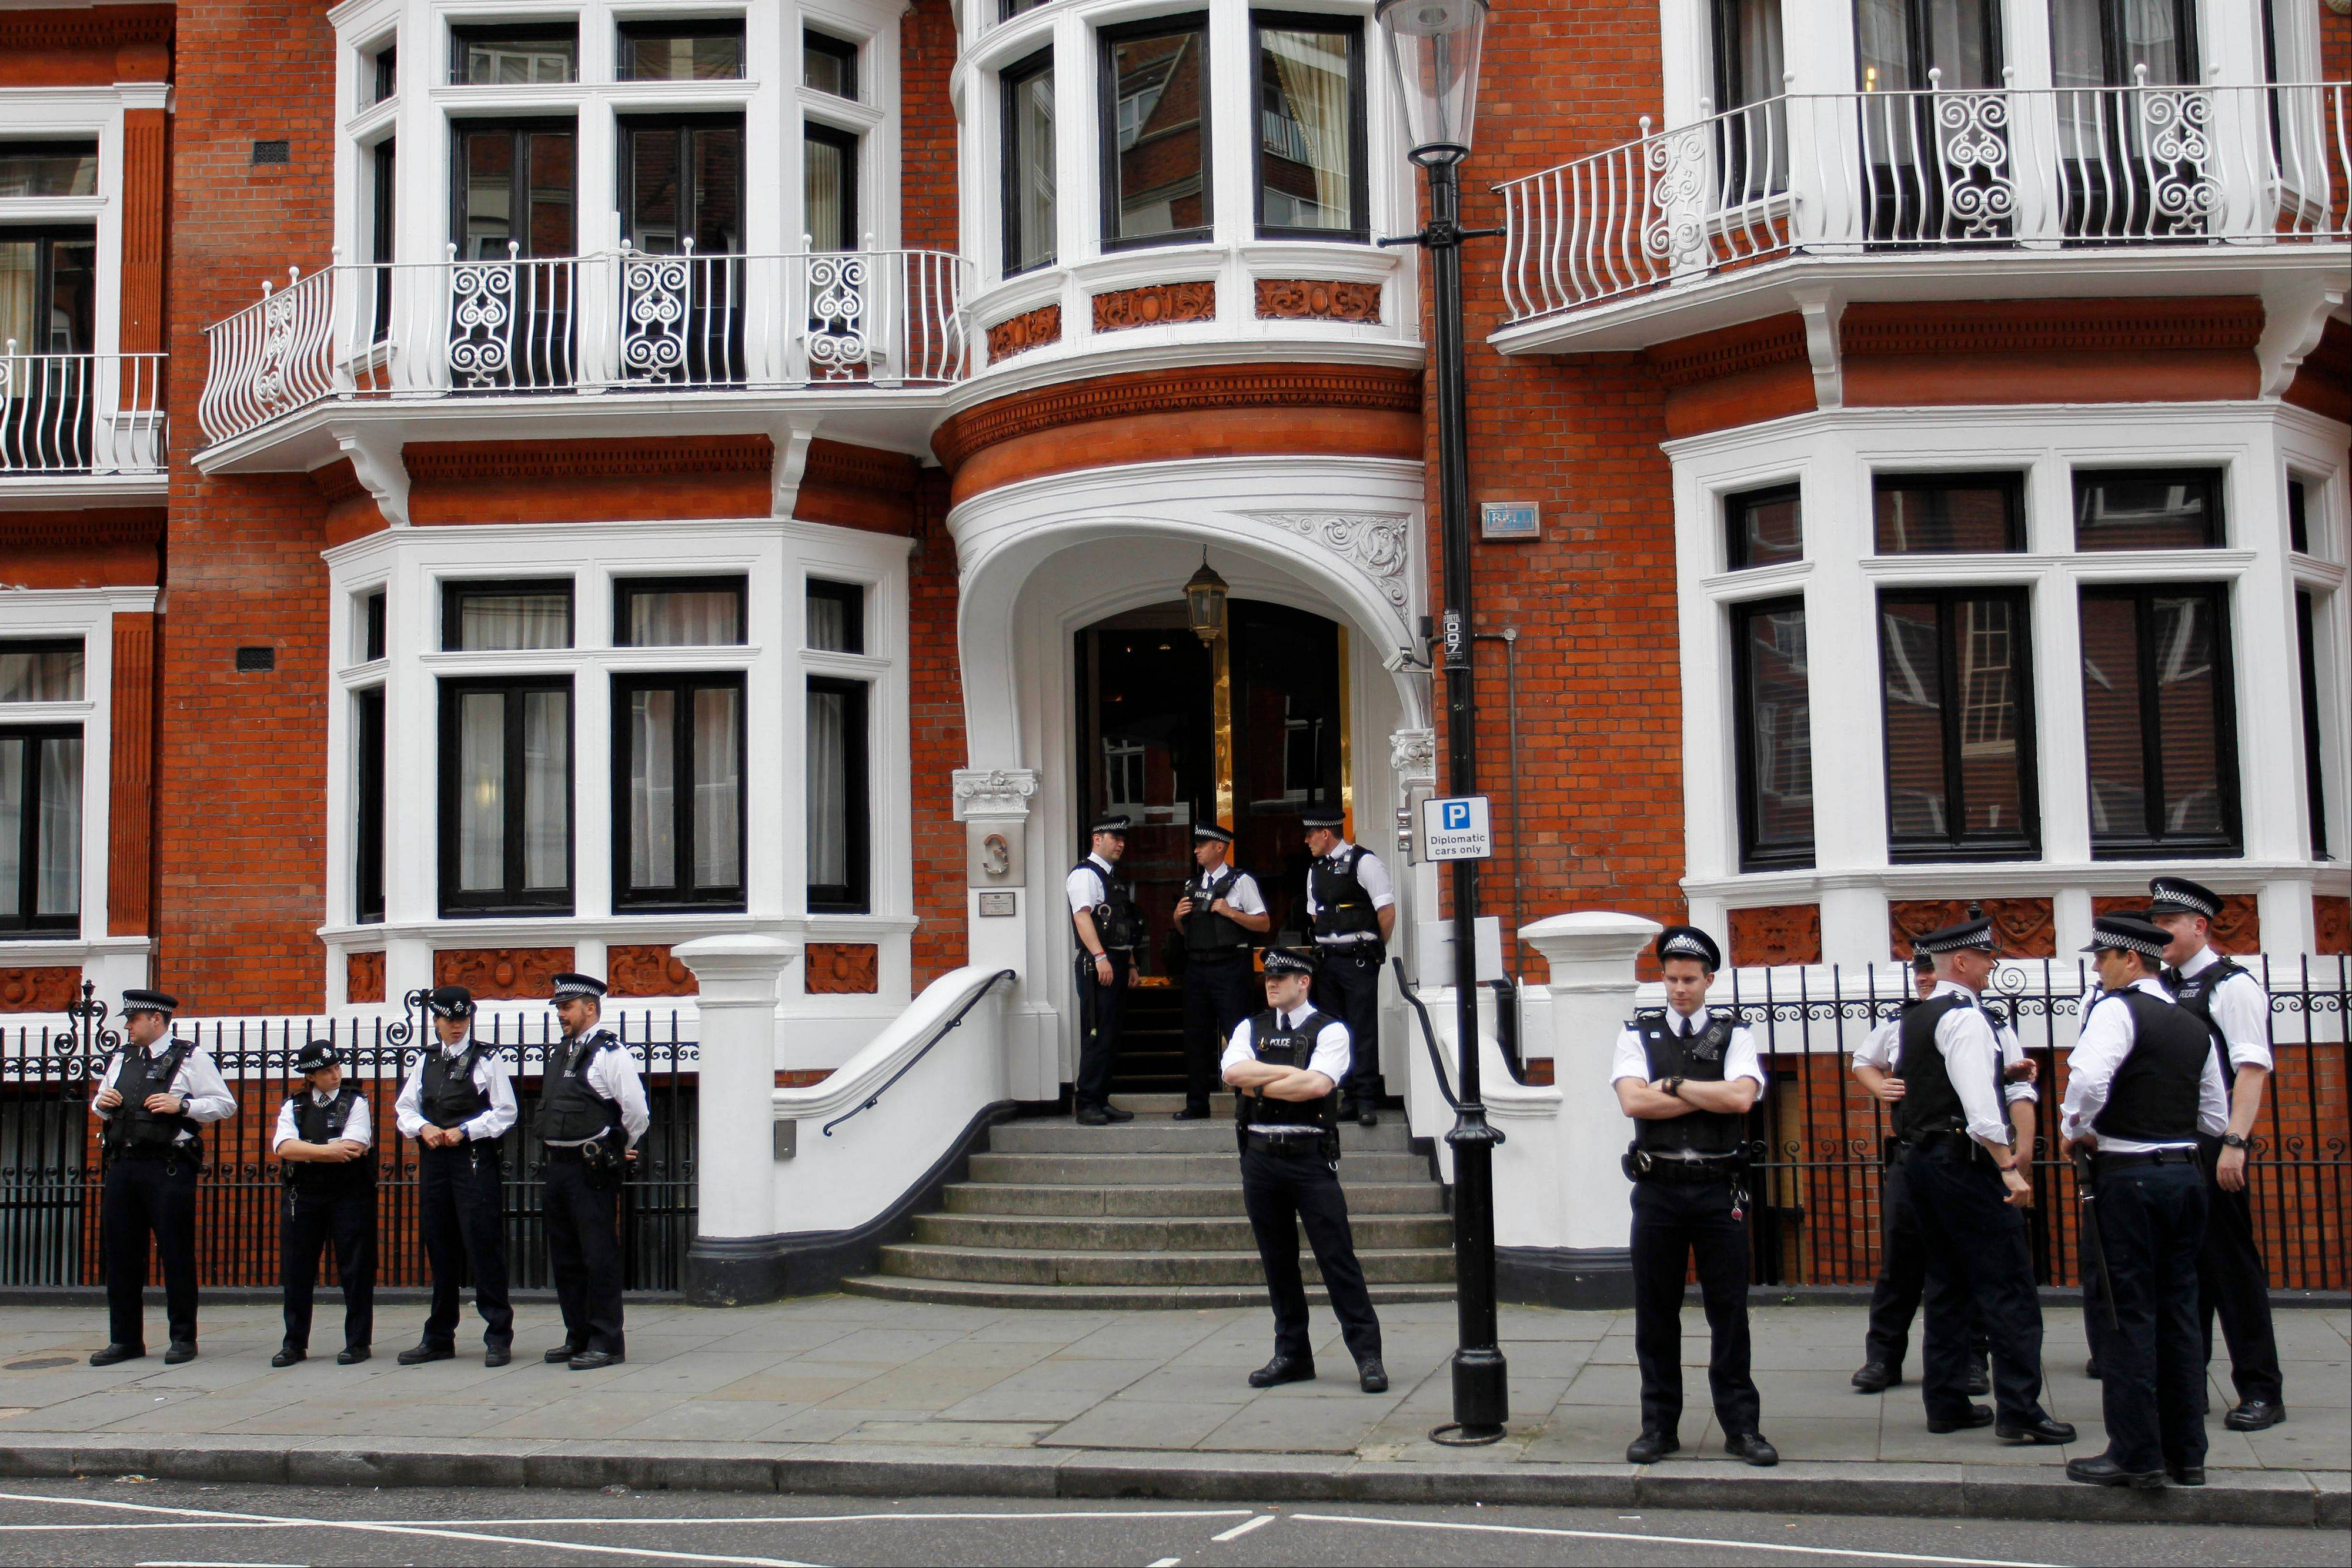 British police officers stand guard outside the Ecuadorean Embassy in central London, Thursday, Aug. 16, 2012 after Ecuadorean Foreign Minister Ricardo Patino announced that he had granted political asylum to WikiLeaks founder Julian Assange. He's won asylum in Ecuador, but Julian Assange is no closer to getting there.